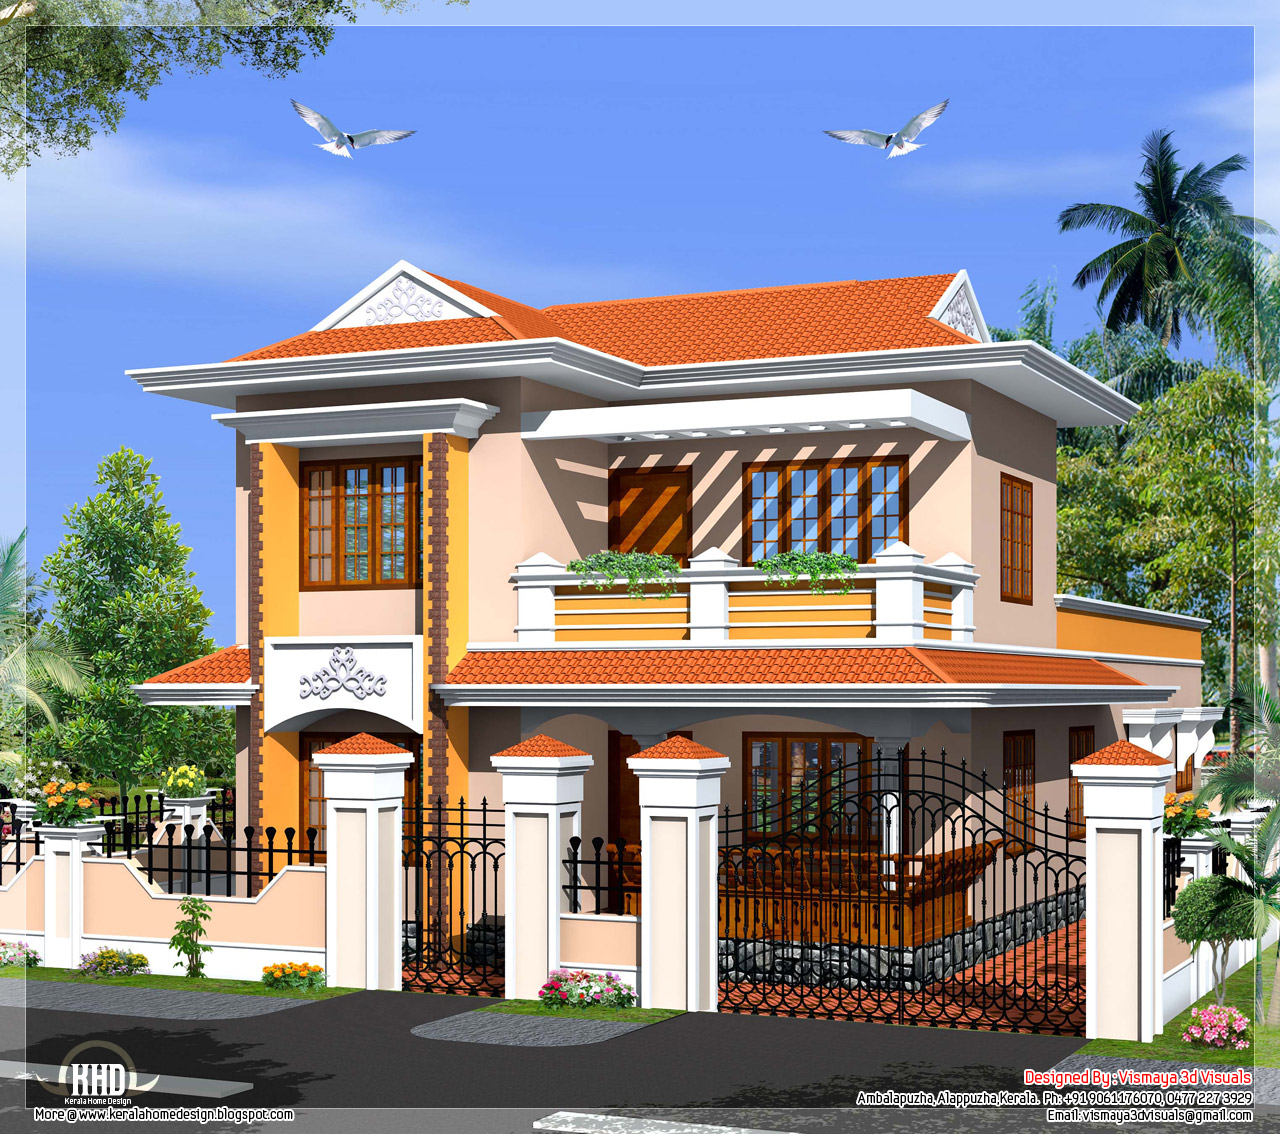 Kerala model villa in 2110 in square feet house design plans for Model house design